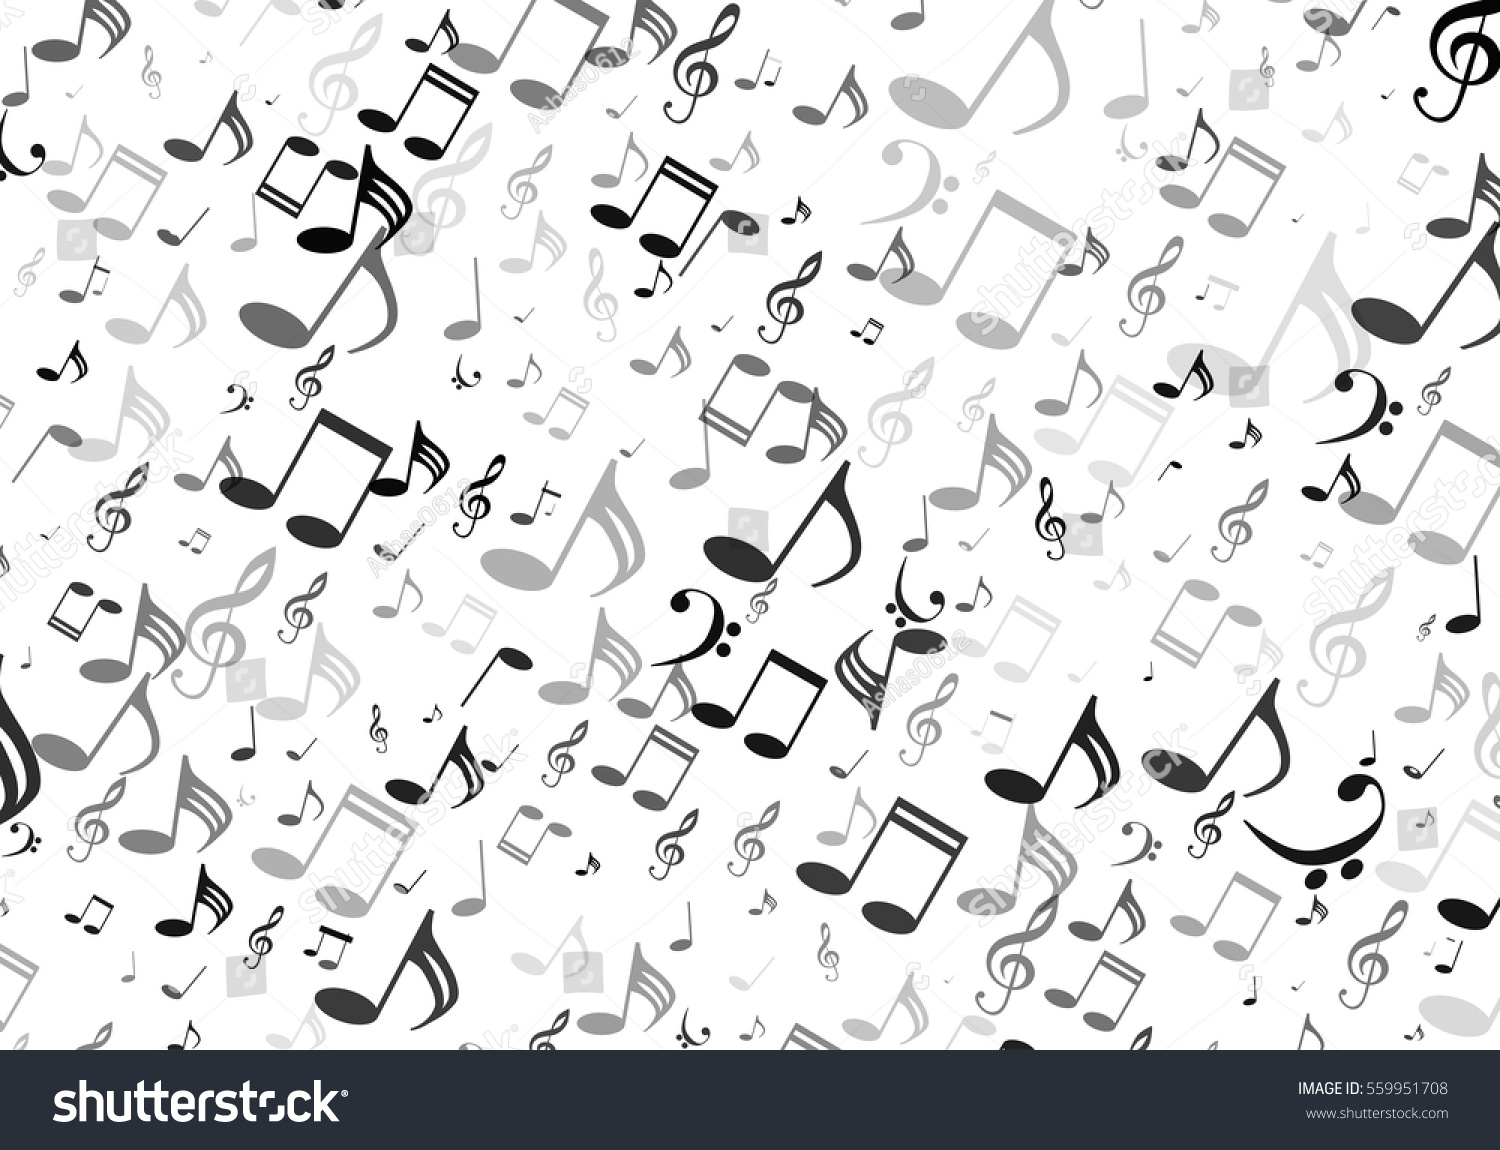 Musical symbols music notes treble clef stock vector 559951708 musical symbols music notes treble clef white and black background biocorpaavc Images